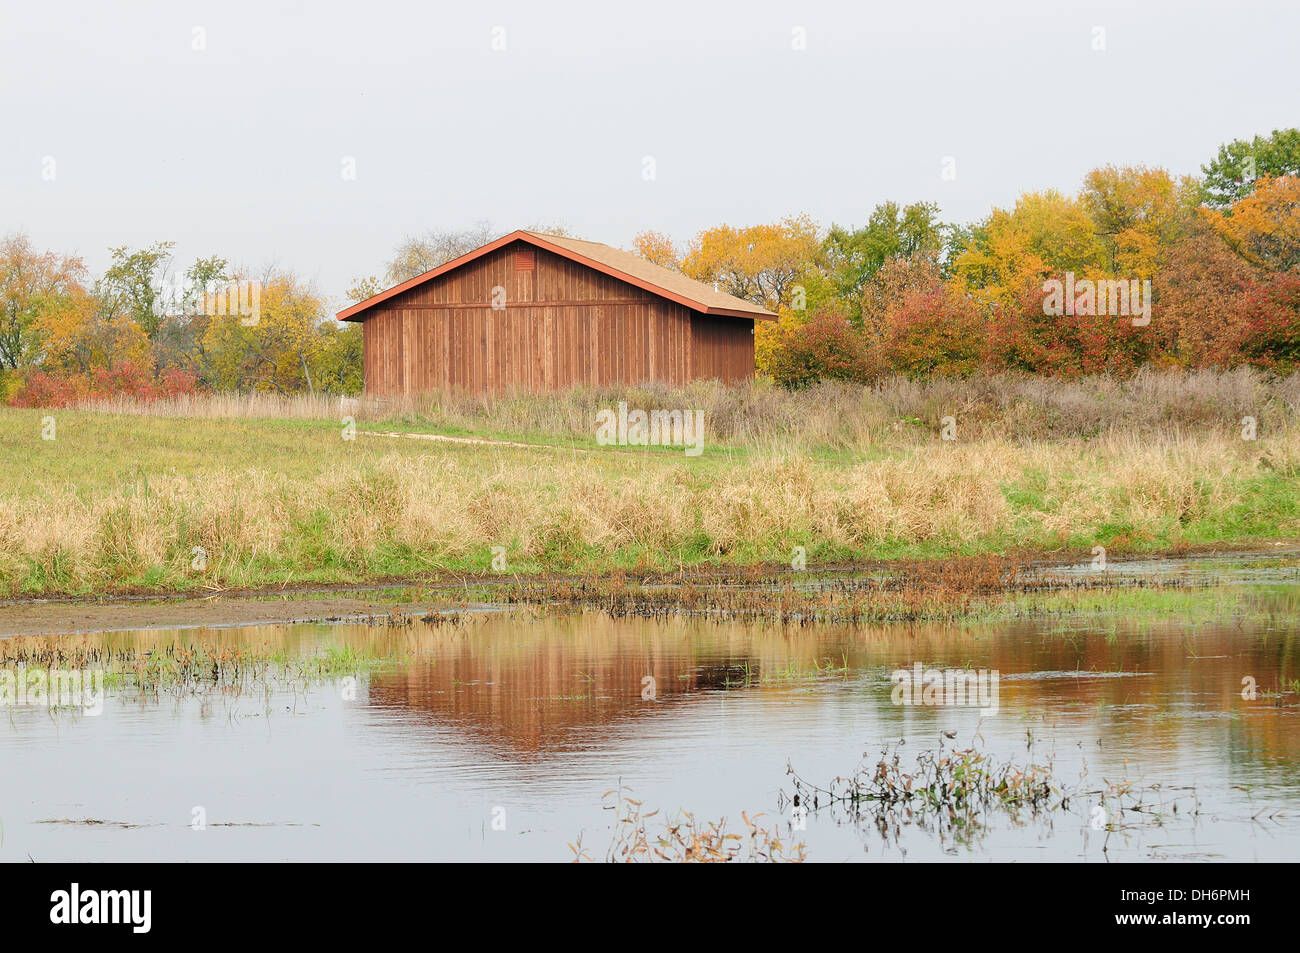 Autumn scenic of farm shed. - Stock Image